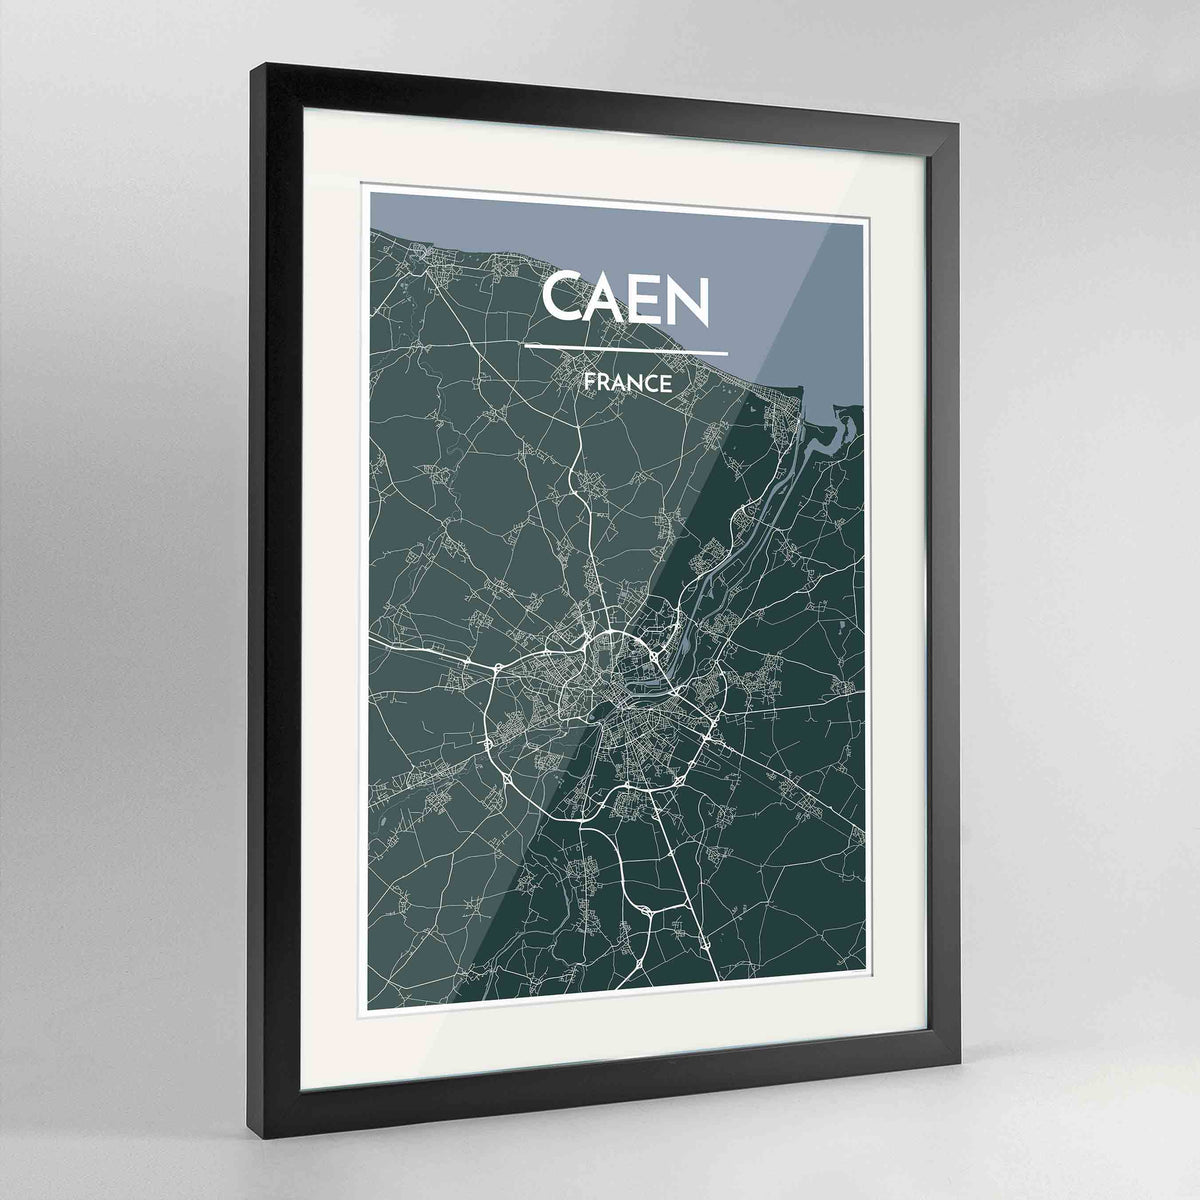 "Framed Caen Map Art Print 24x36"" Contemporary Black frame Point Two Design Group"